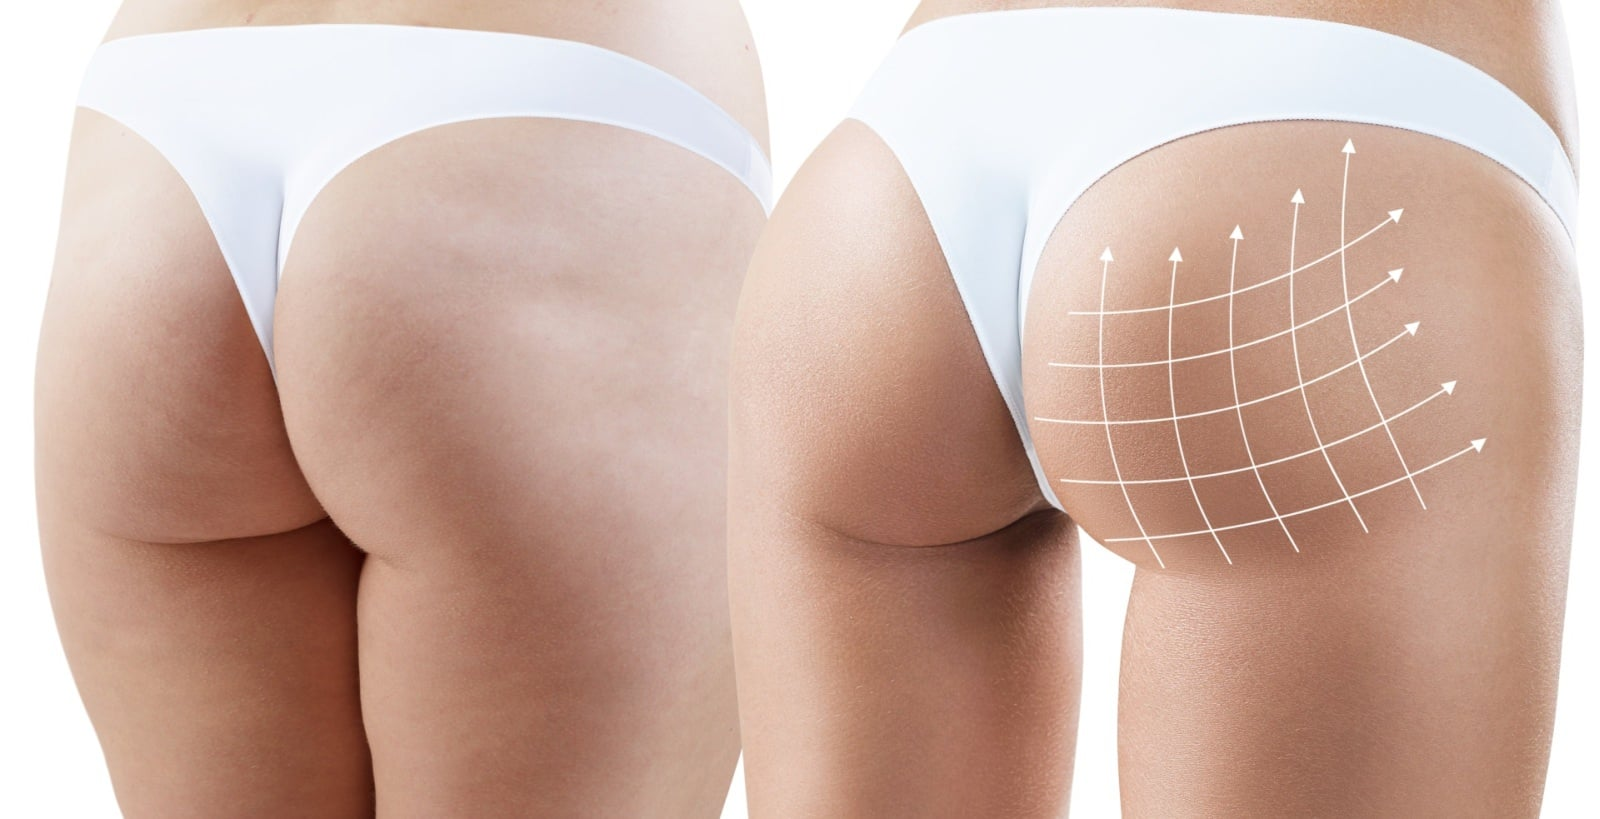 Brazilian buttlift